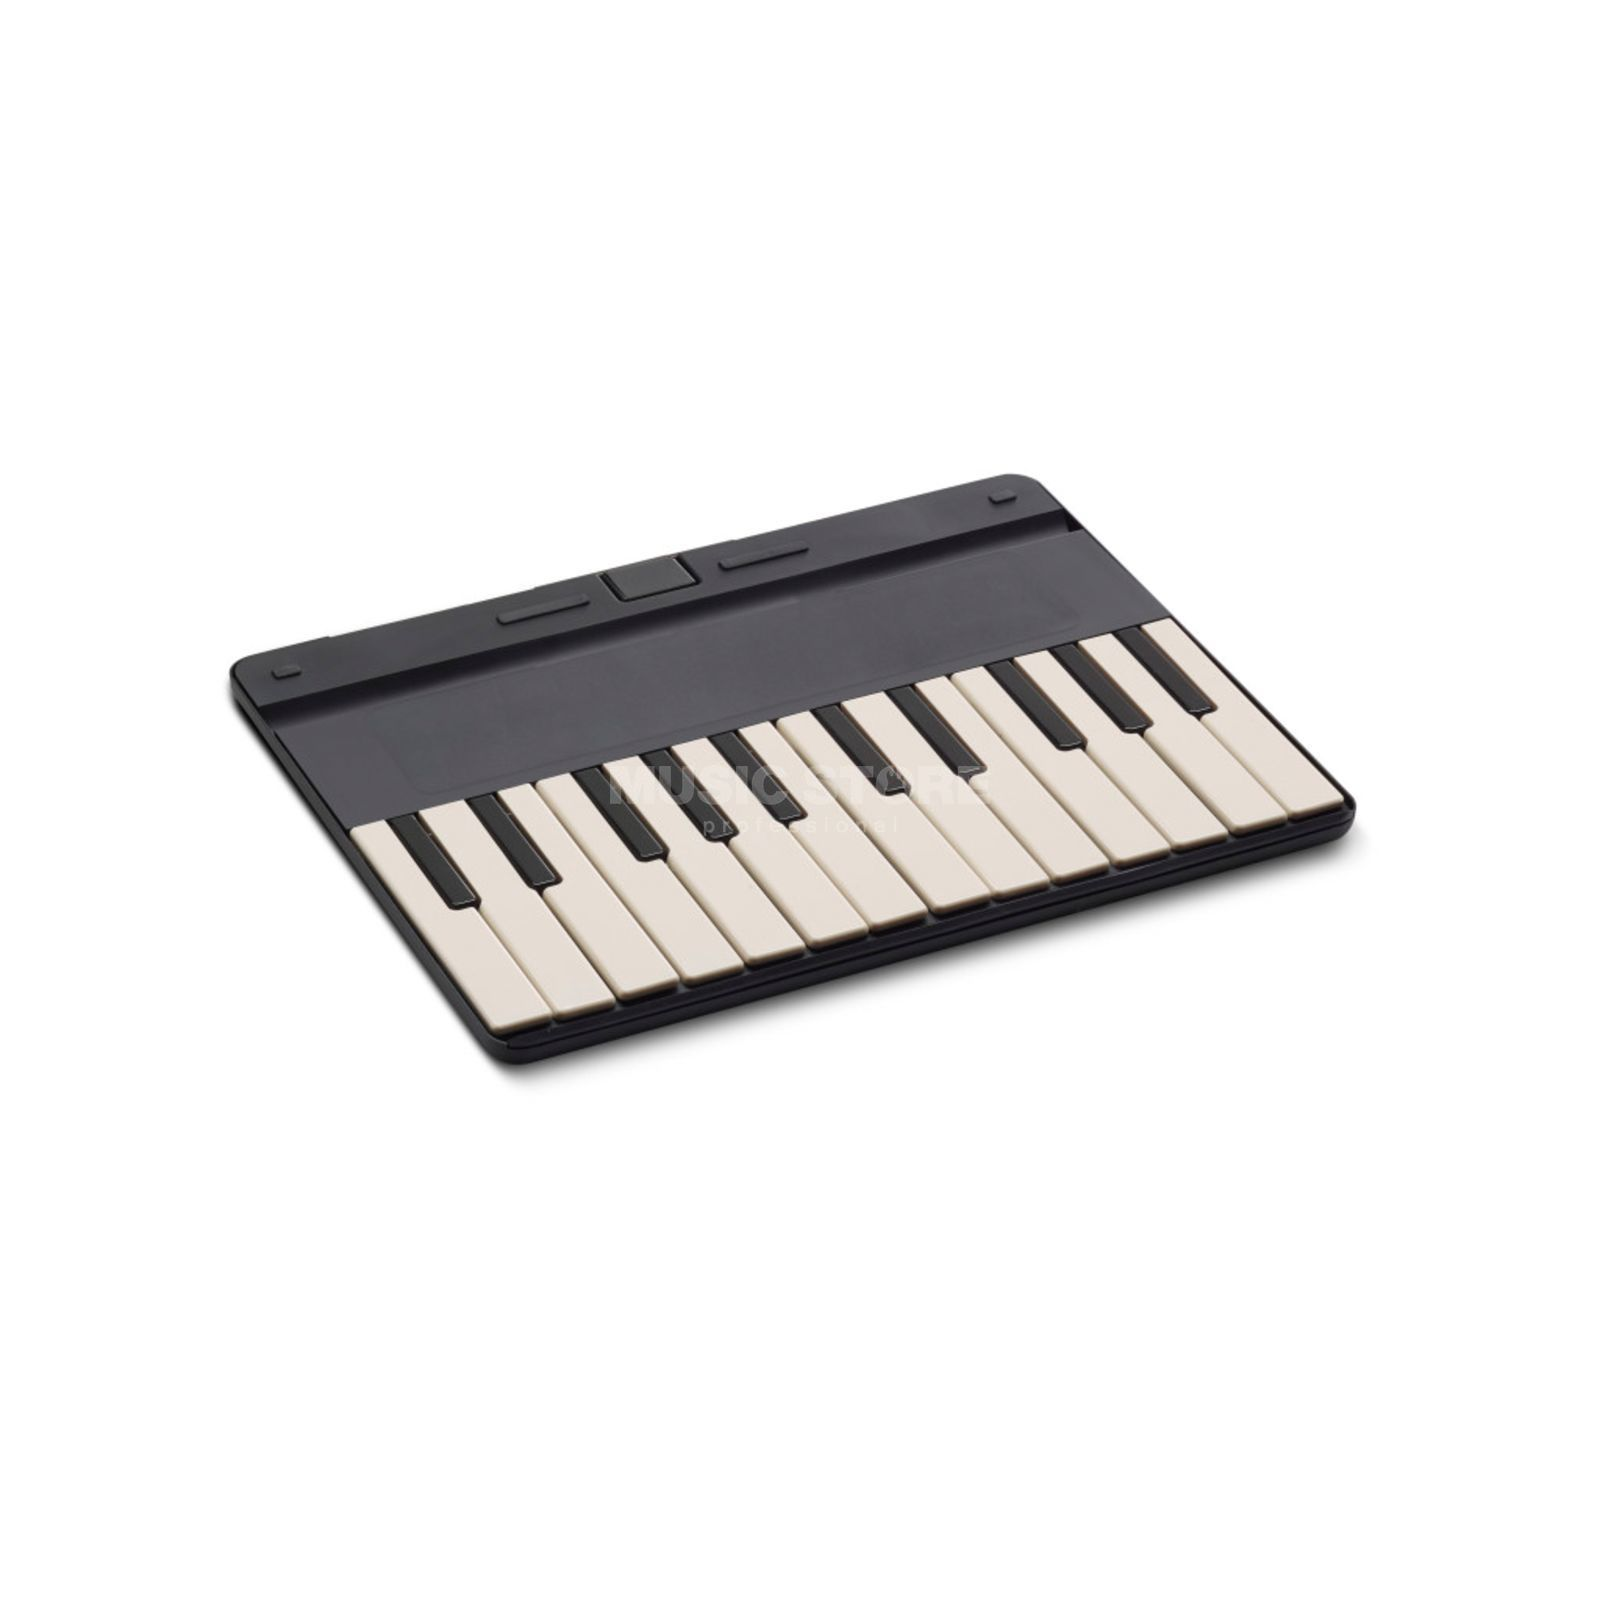 Miselu C.24 Wireless MIDI Keyboard inkl. Filztasche Product Image